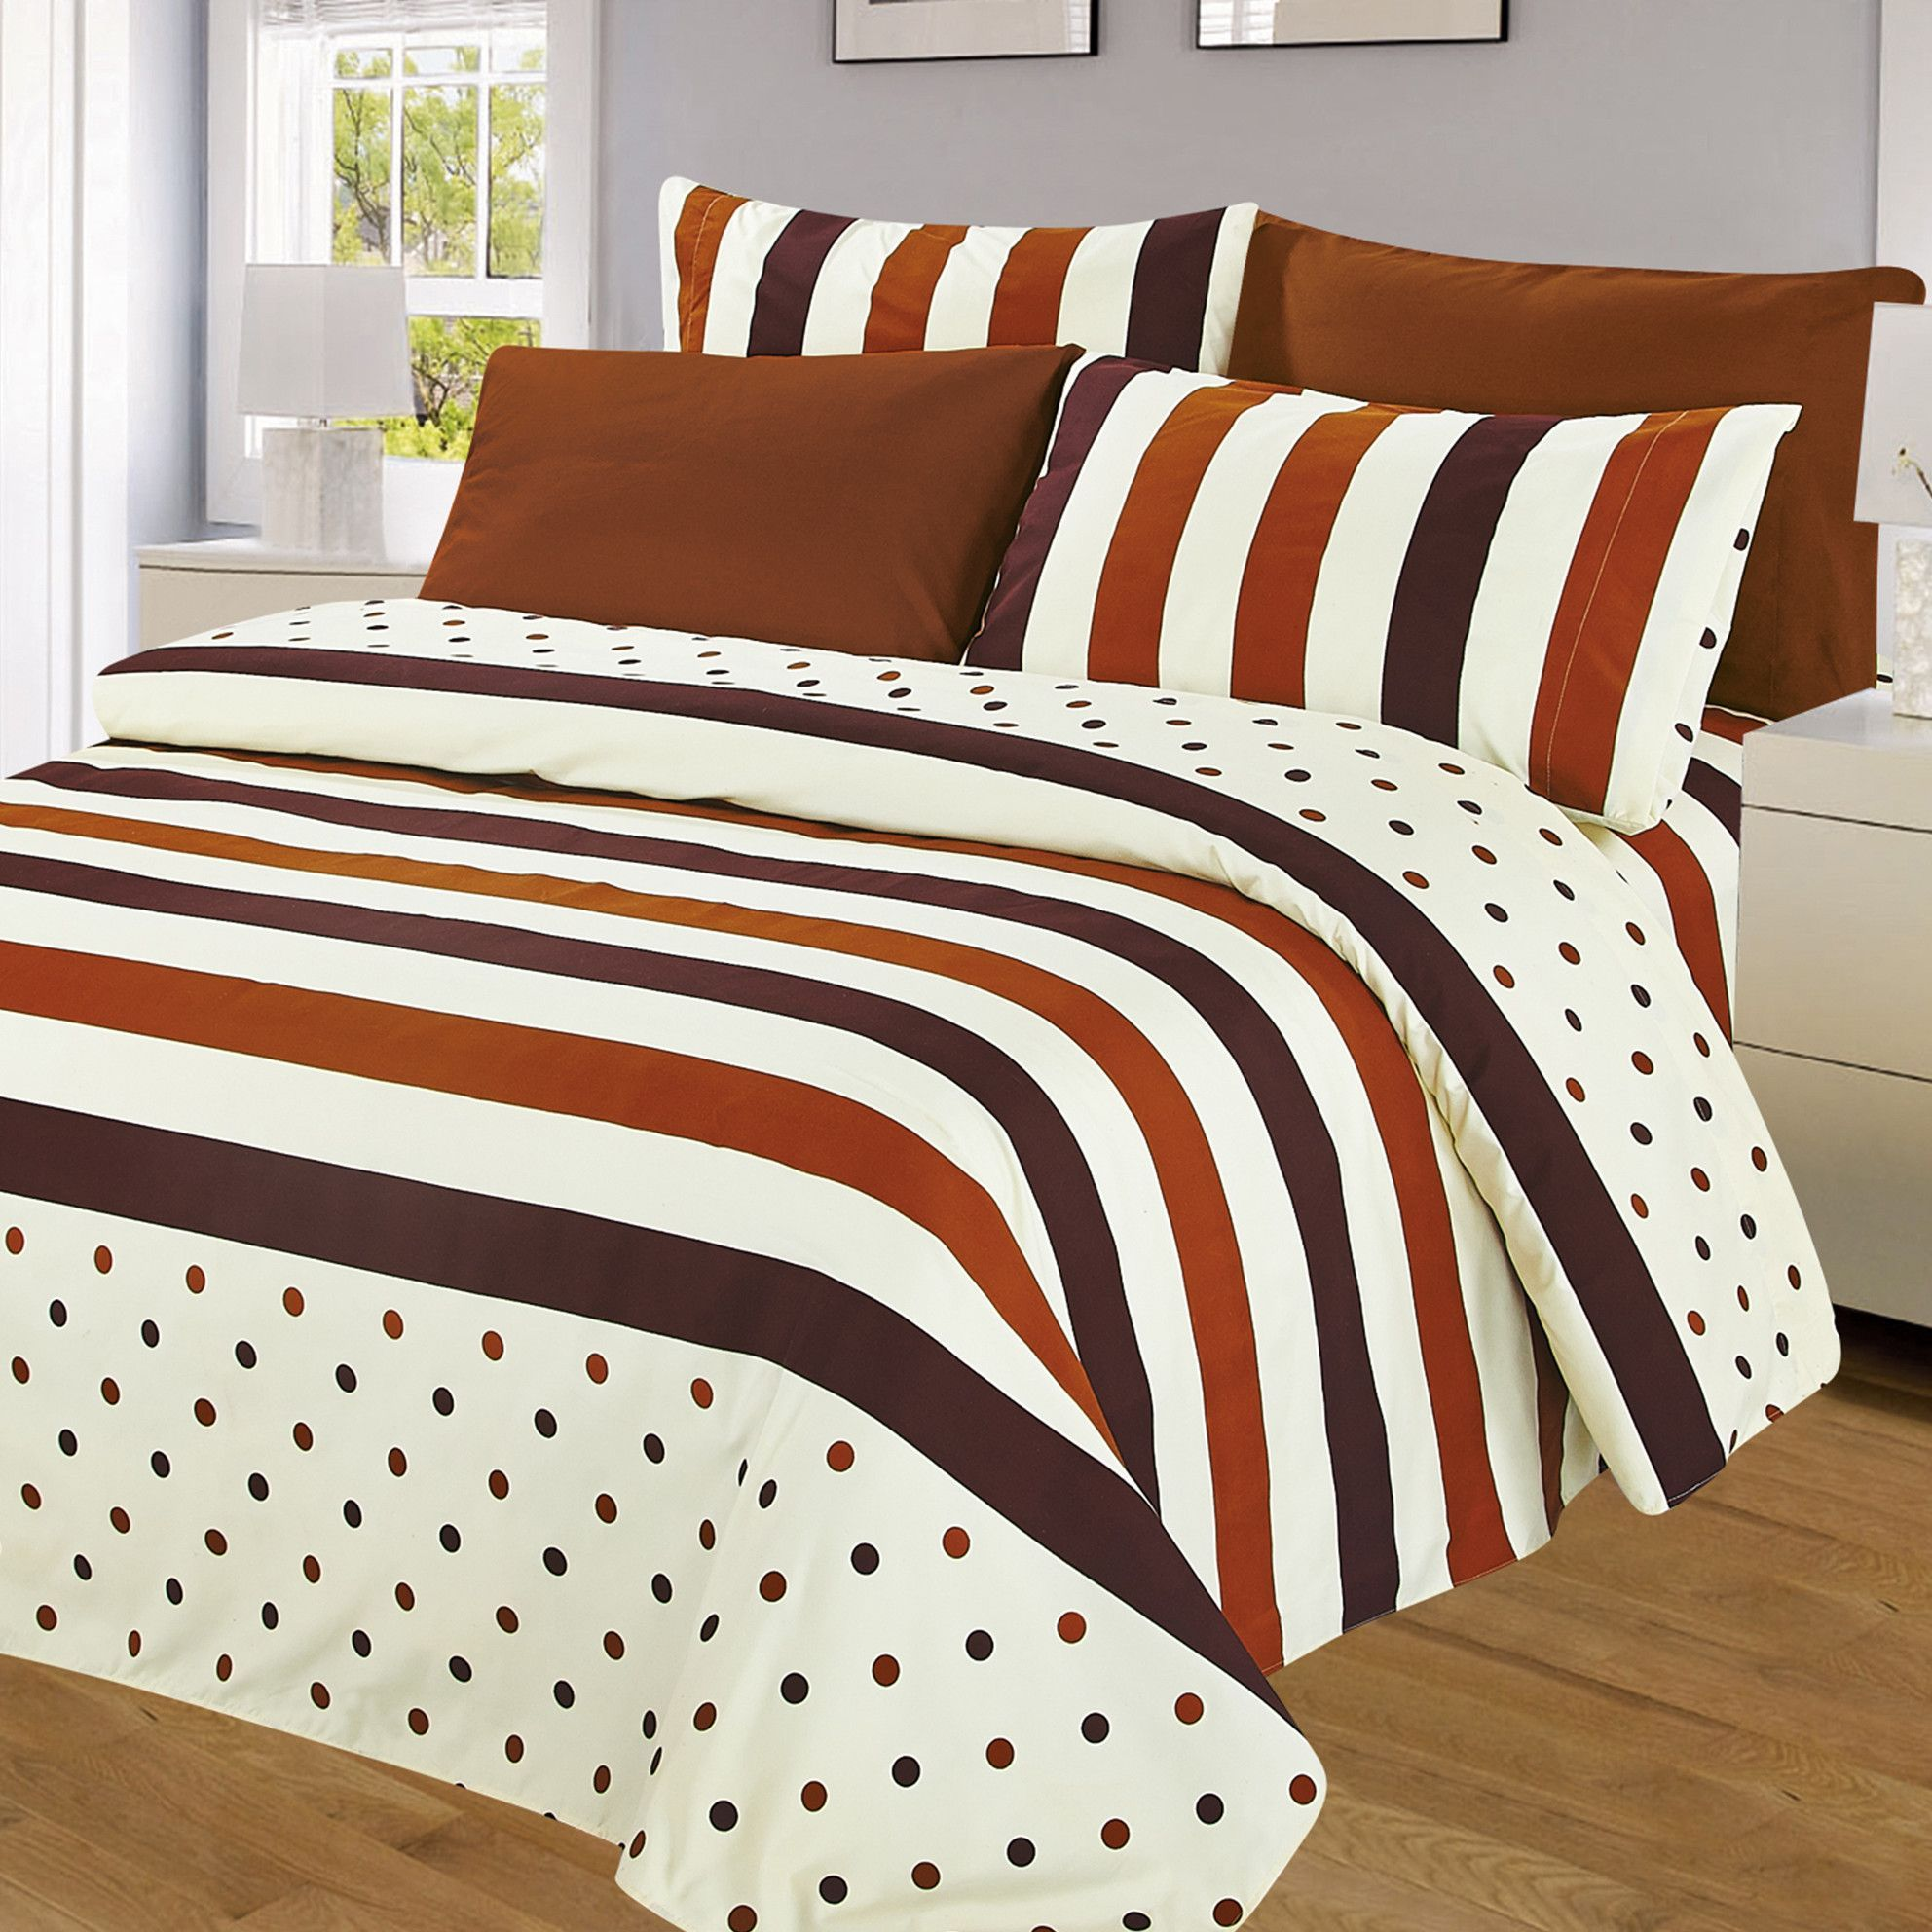 piece thread count sheet set products pinterest